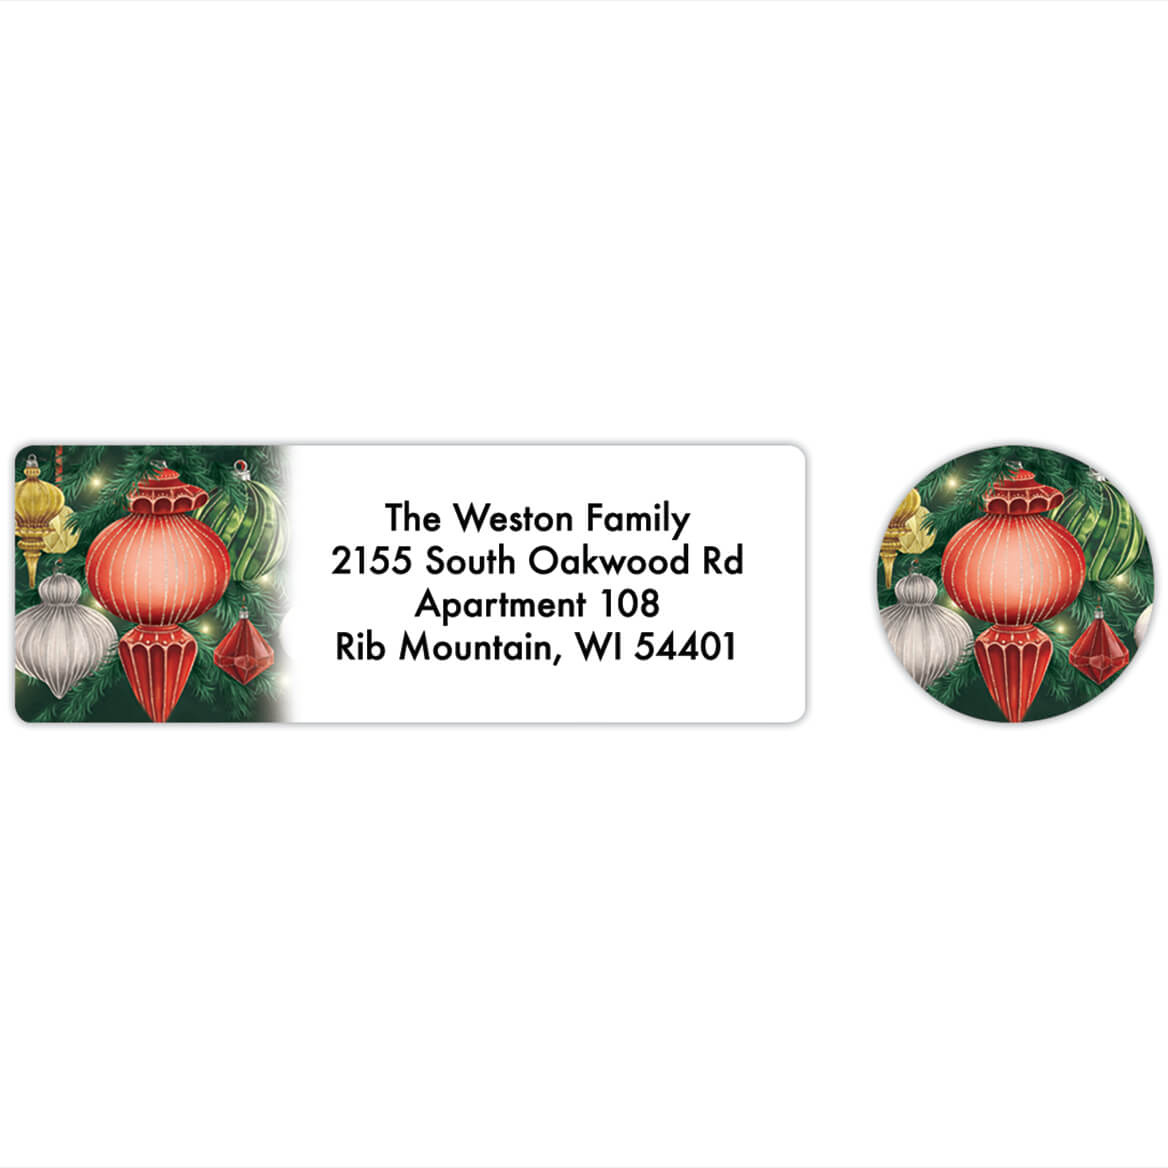 Personalized Twinkling Ornaments Labels & Seals 20-368270